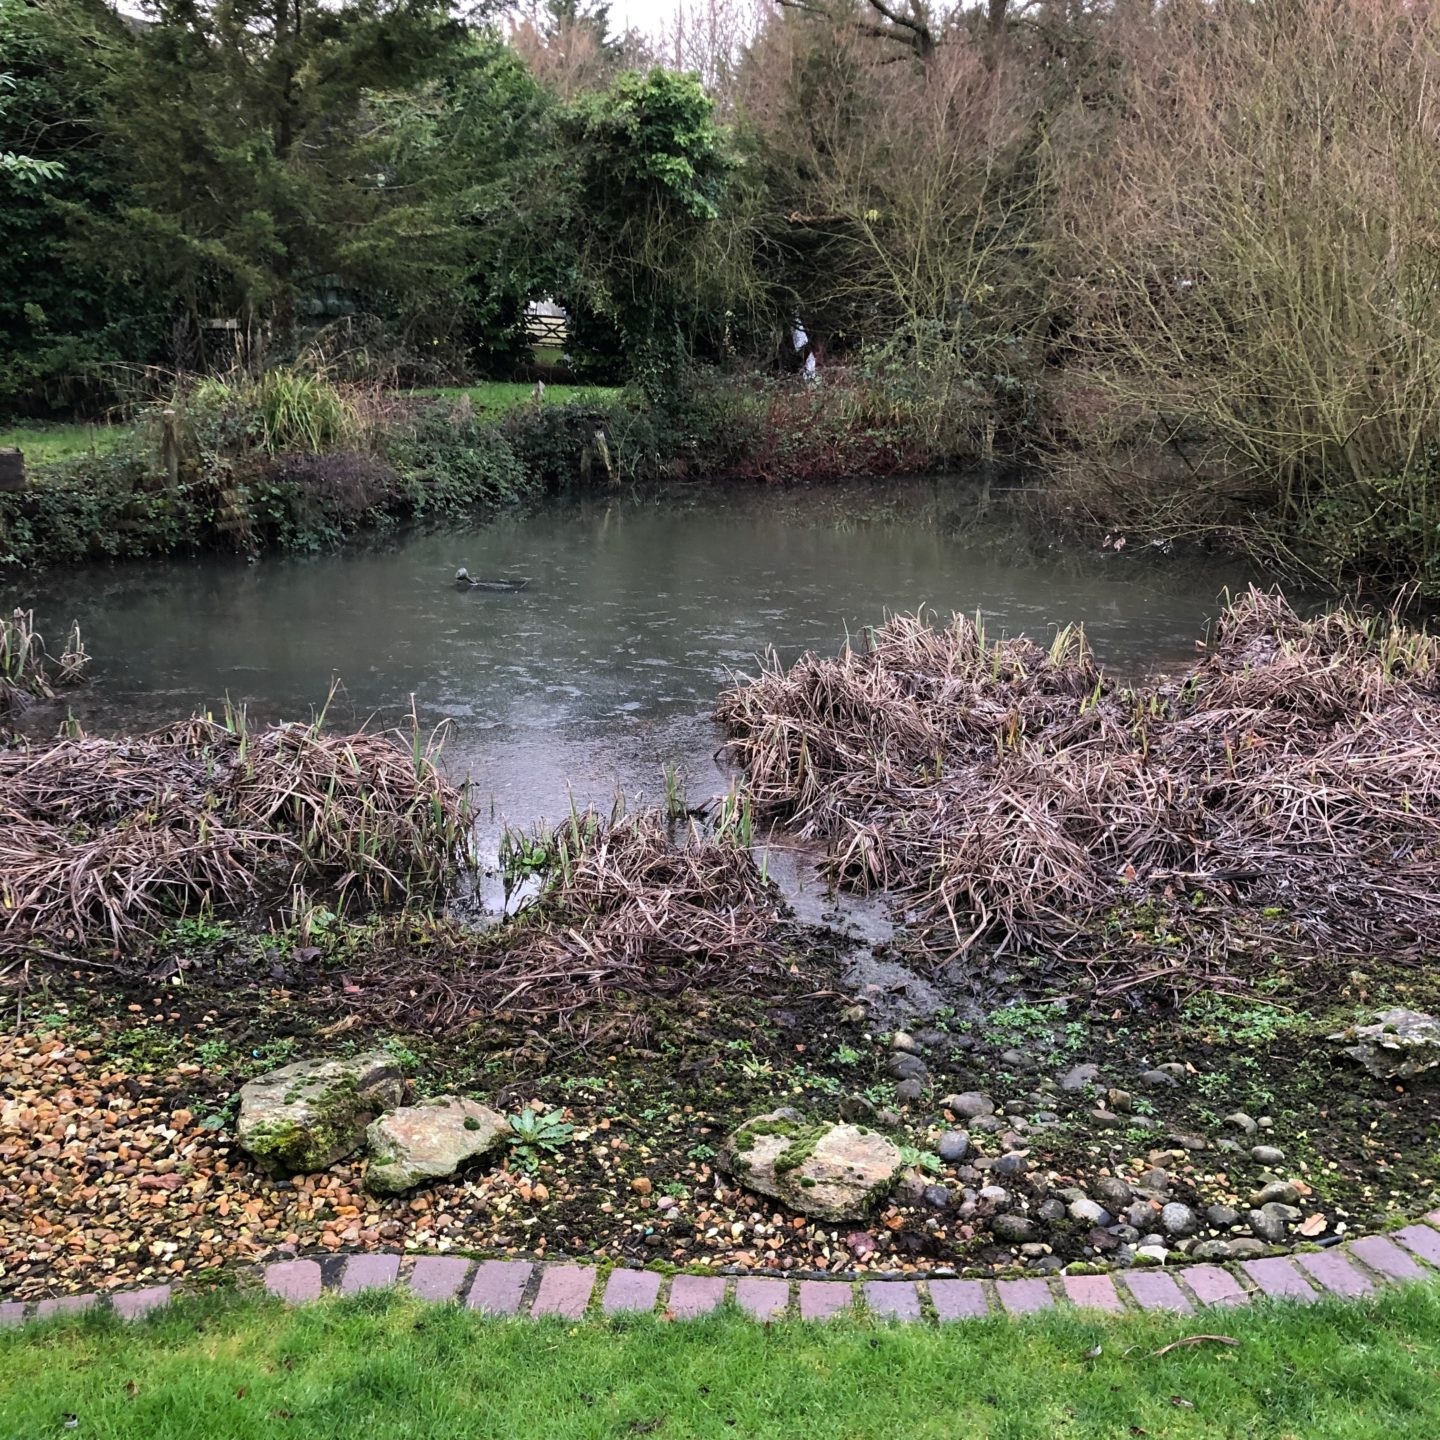 Duckpond at Body And Mind Reboot